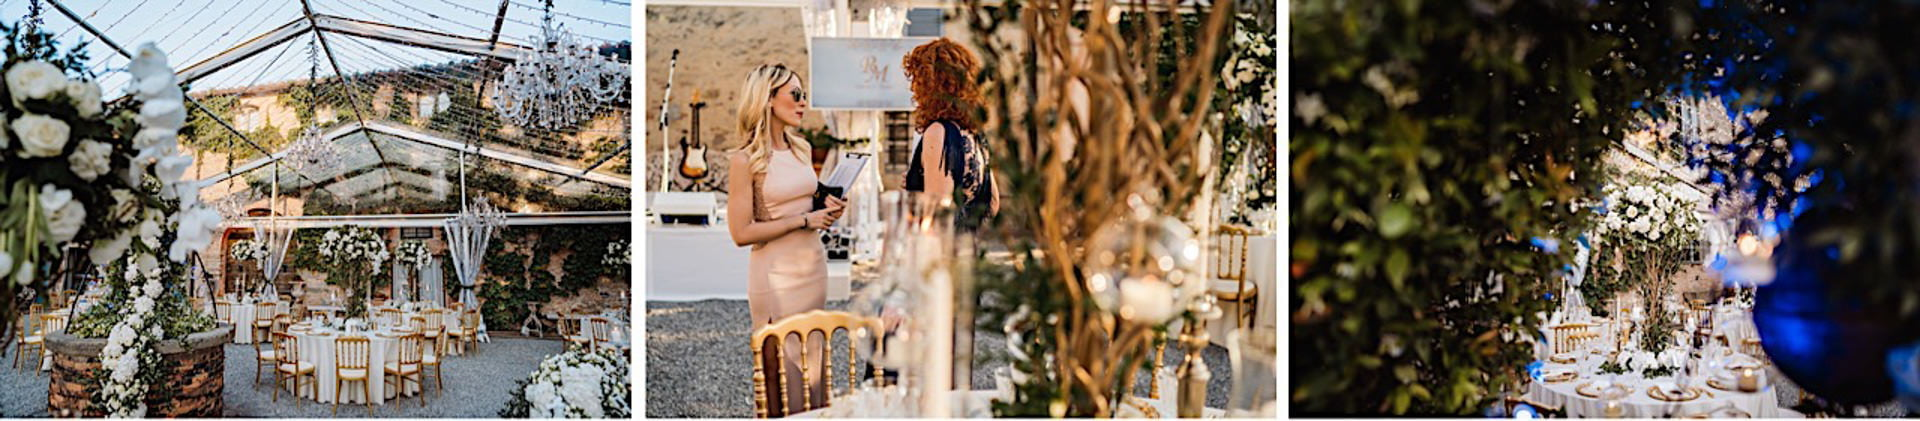 Luxury Events, Roberta and Manuel With Silvia Slitti Luxury Events by Federico Pannacci